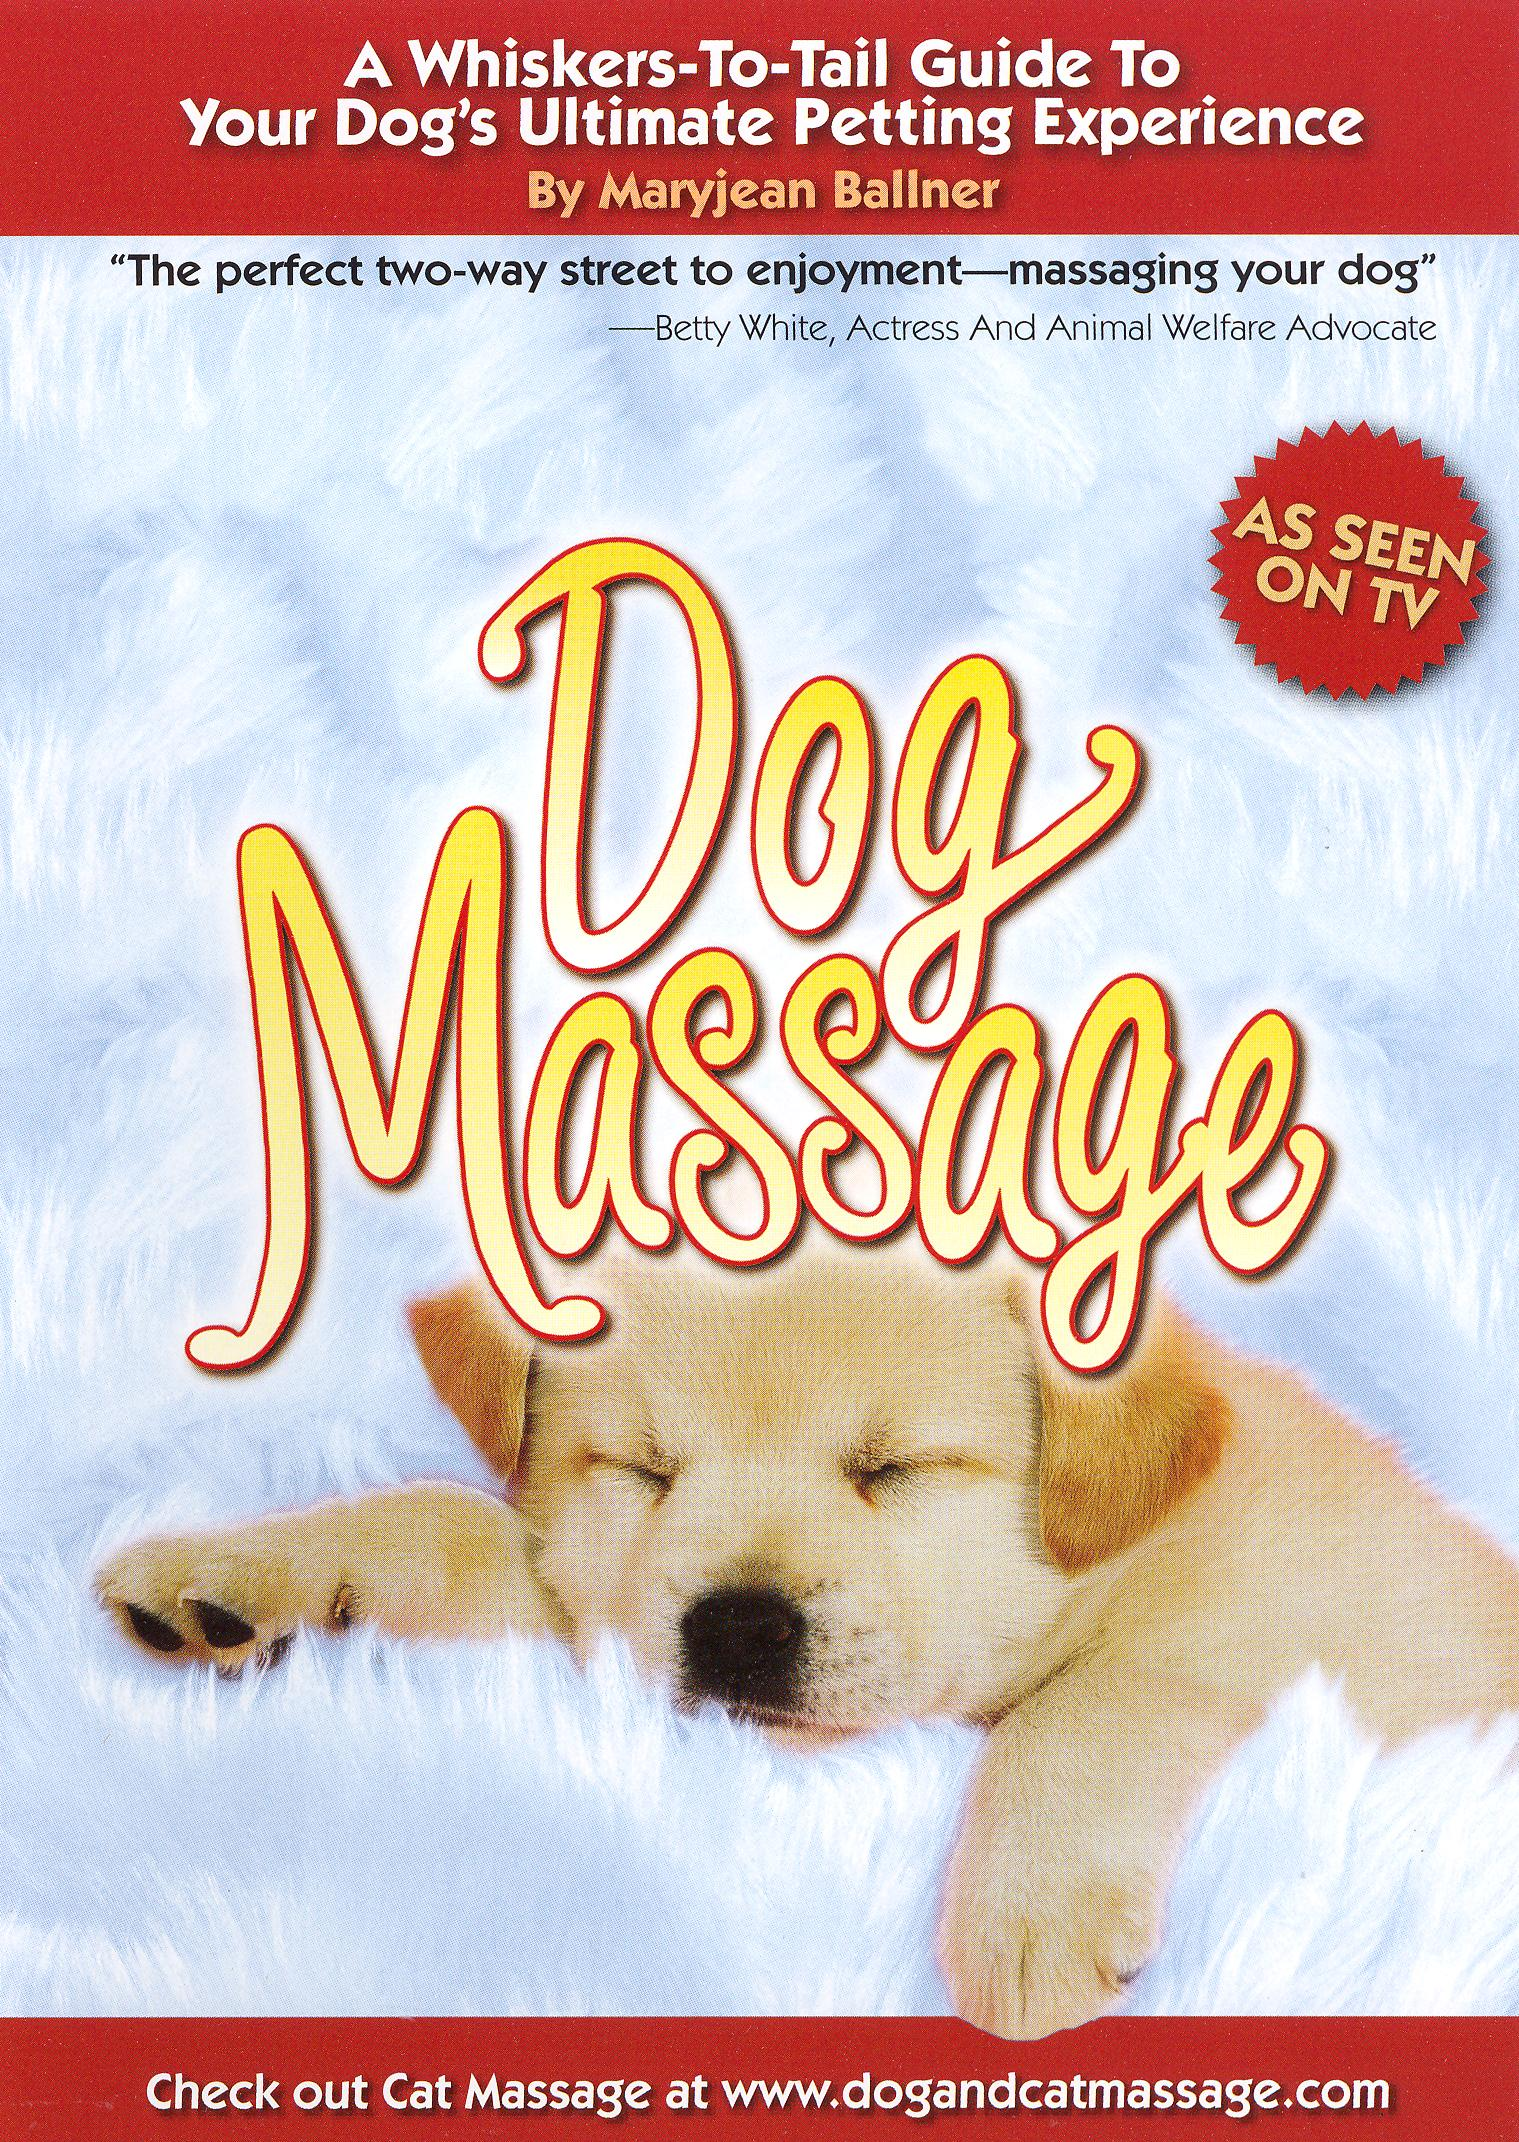 Your Dog Wants a Massage